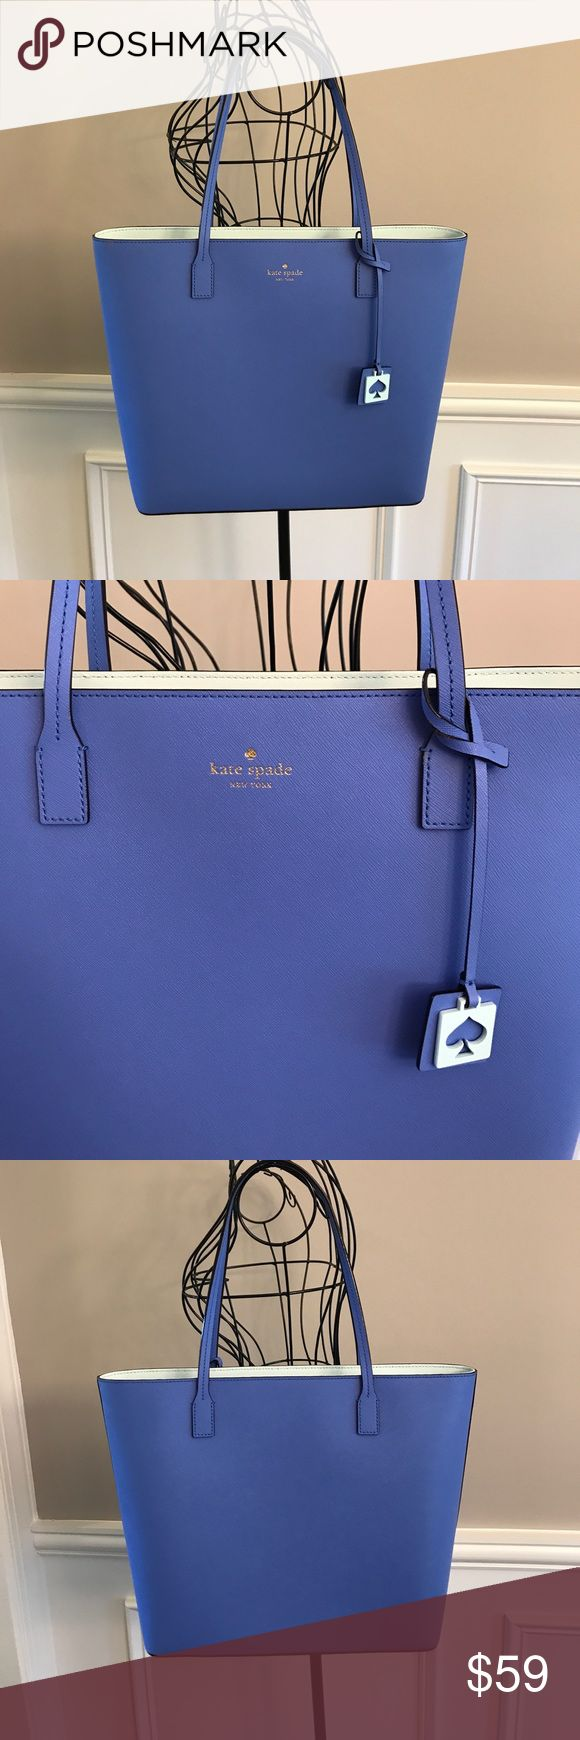 """Kate Spade Tote EUC I bought this Kate Spade bag from the KS outlet store in July for $89 (it was 60% off). I only used it a few times, and it's just sitting in my closet now so I'm selling it. It's light blue with a mint colored interior & details. Super clean, no flaws. Good as new. 13""""W, 12""""H, 4""""D, Strap drop 9"""". Very roomy bag. No dust bag. Offers welcome, discount for bundles. kate spade Bags Totes"""